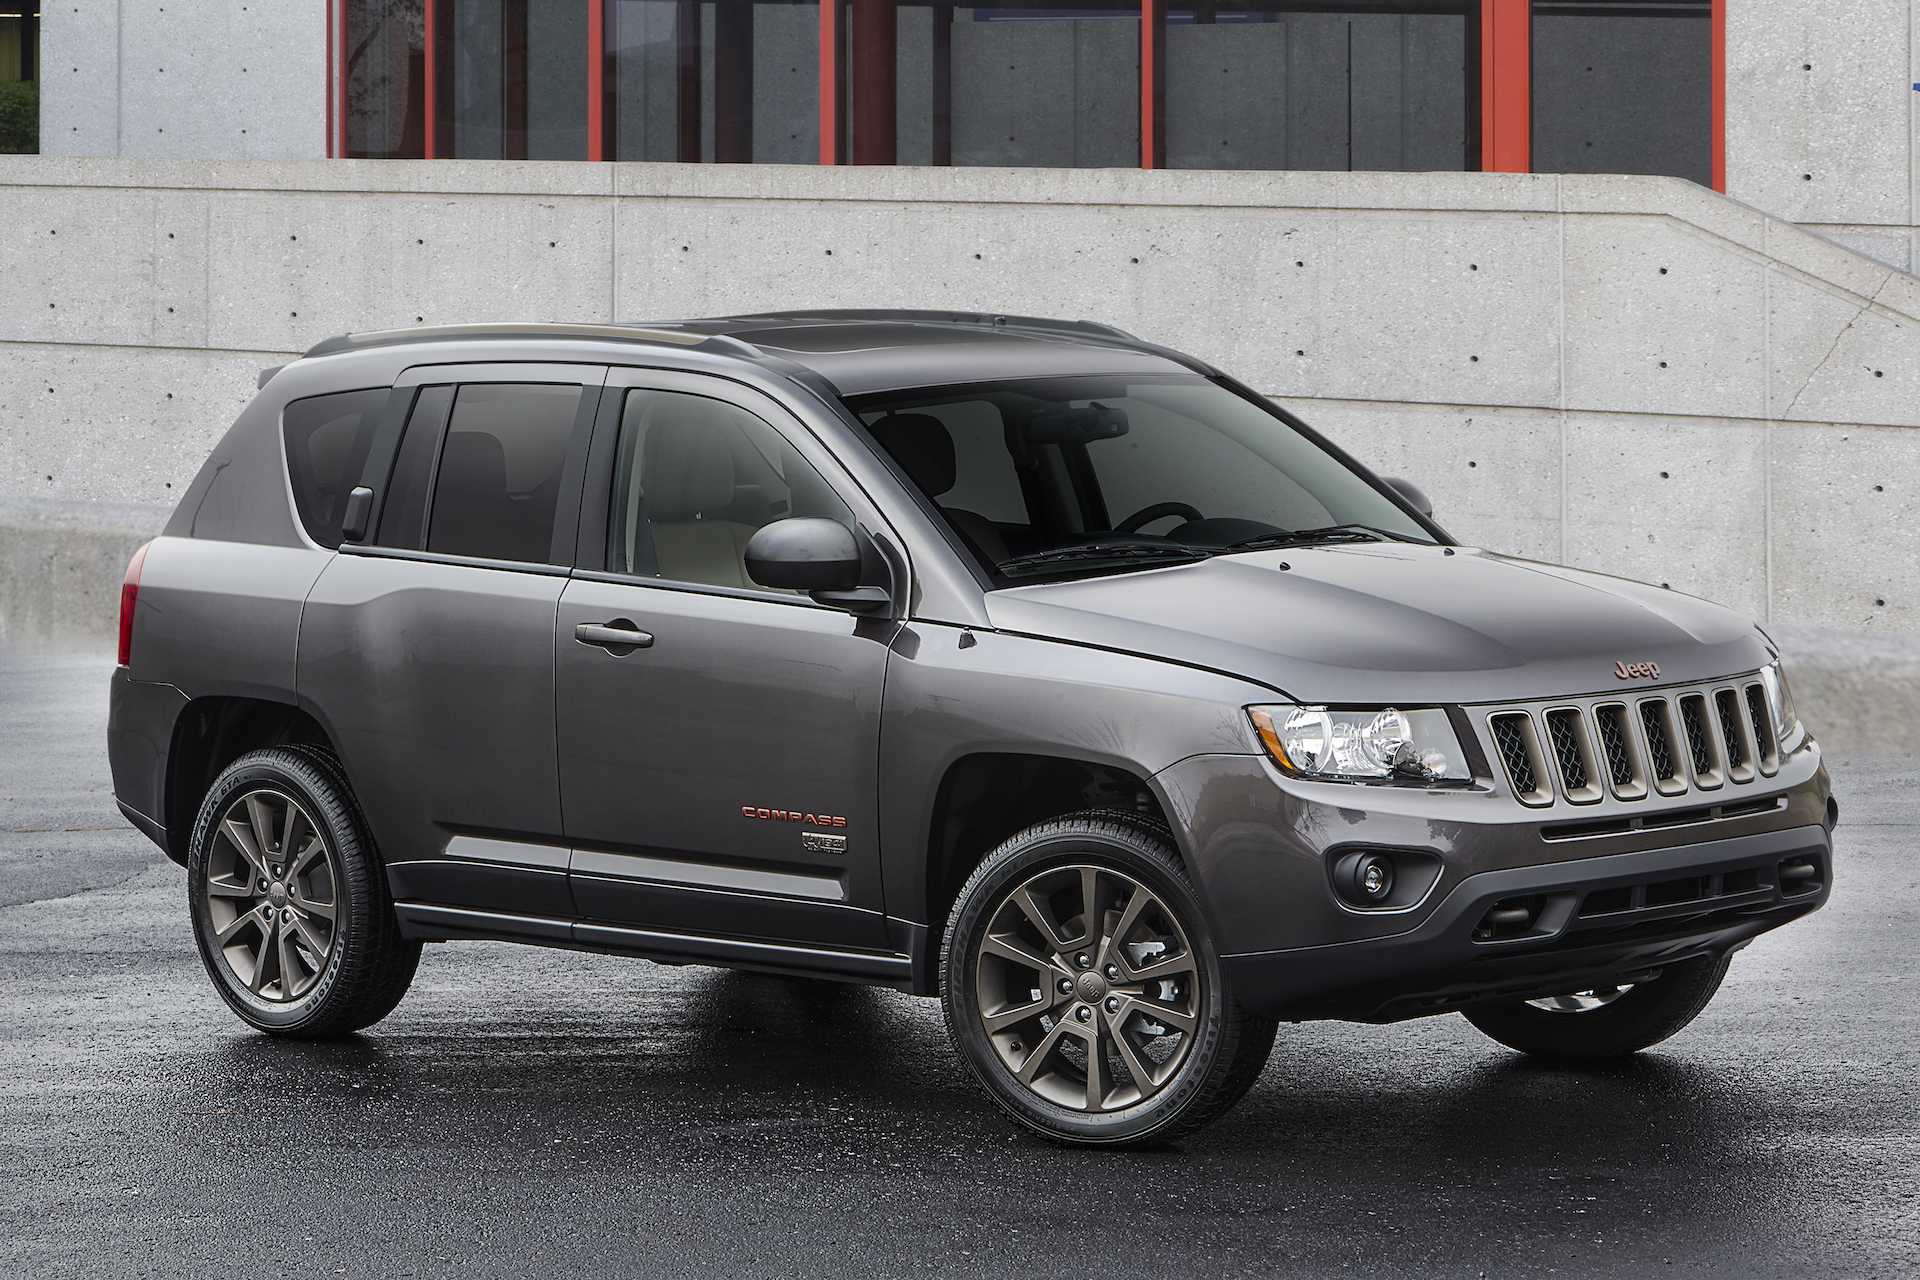 2017 Jeep Compass Review, Ratings, Specs, Prices, and ...